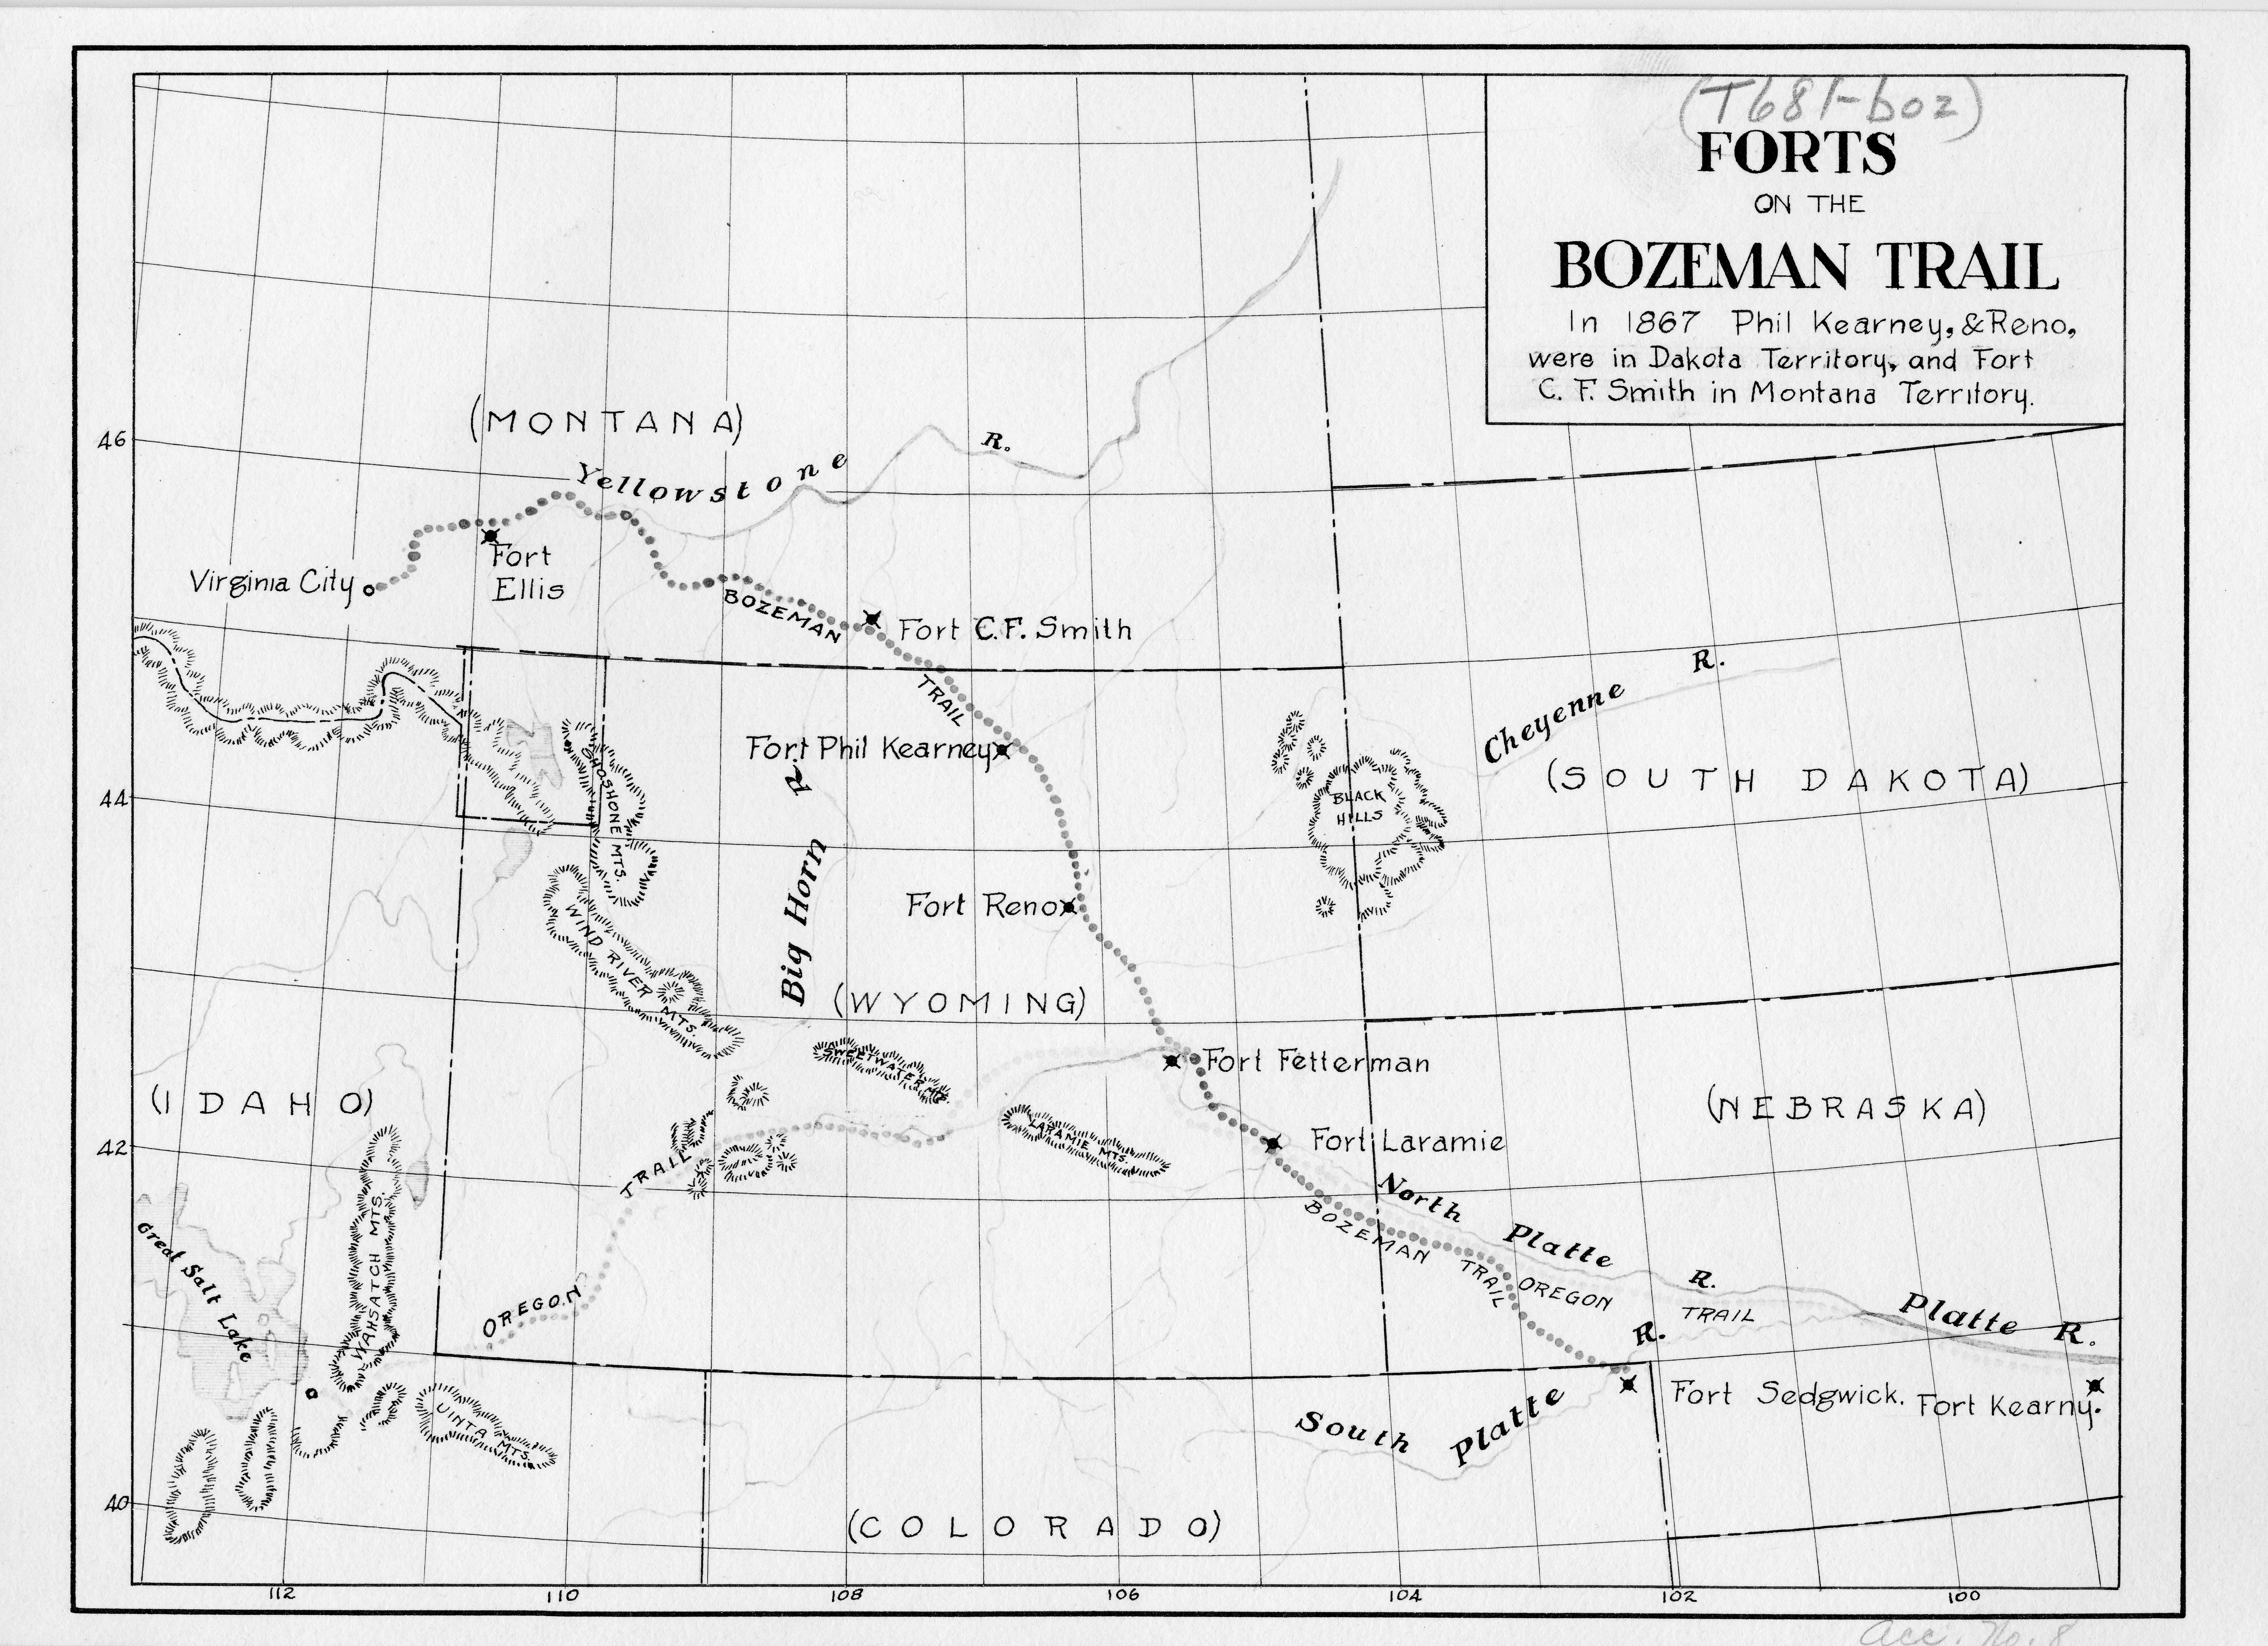 Forts On The Bozeman Trail In 1867 Phil Kearney Reno Were In